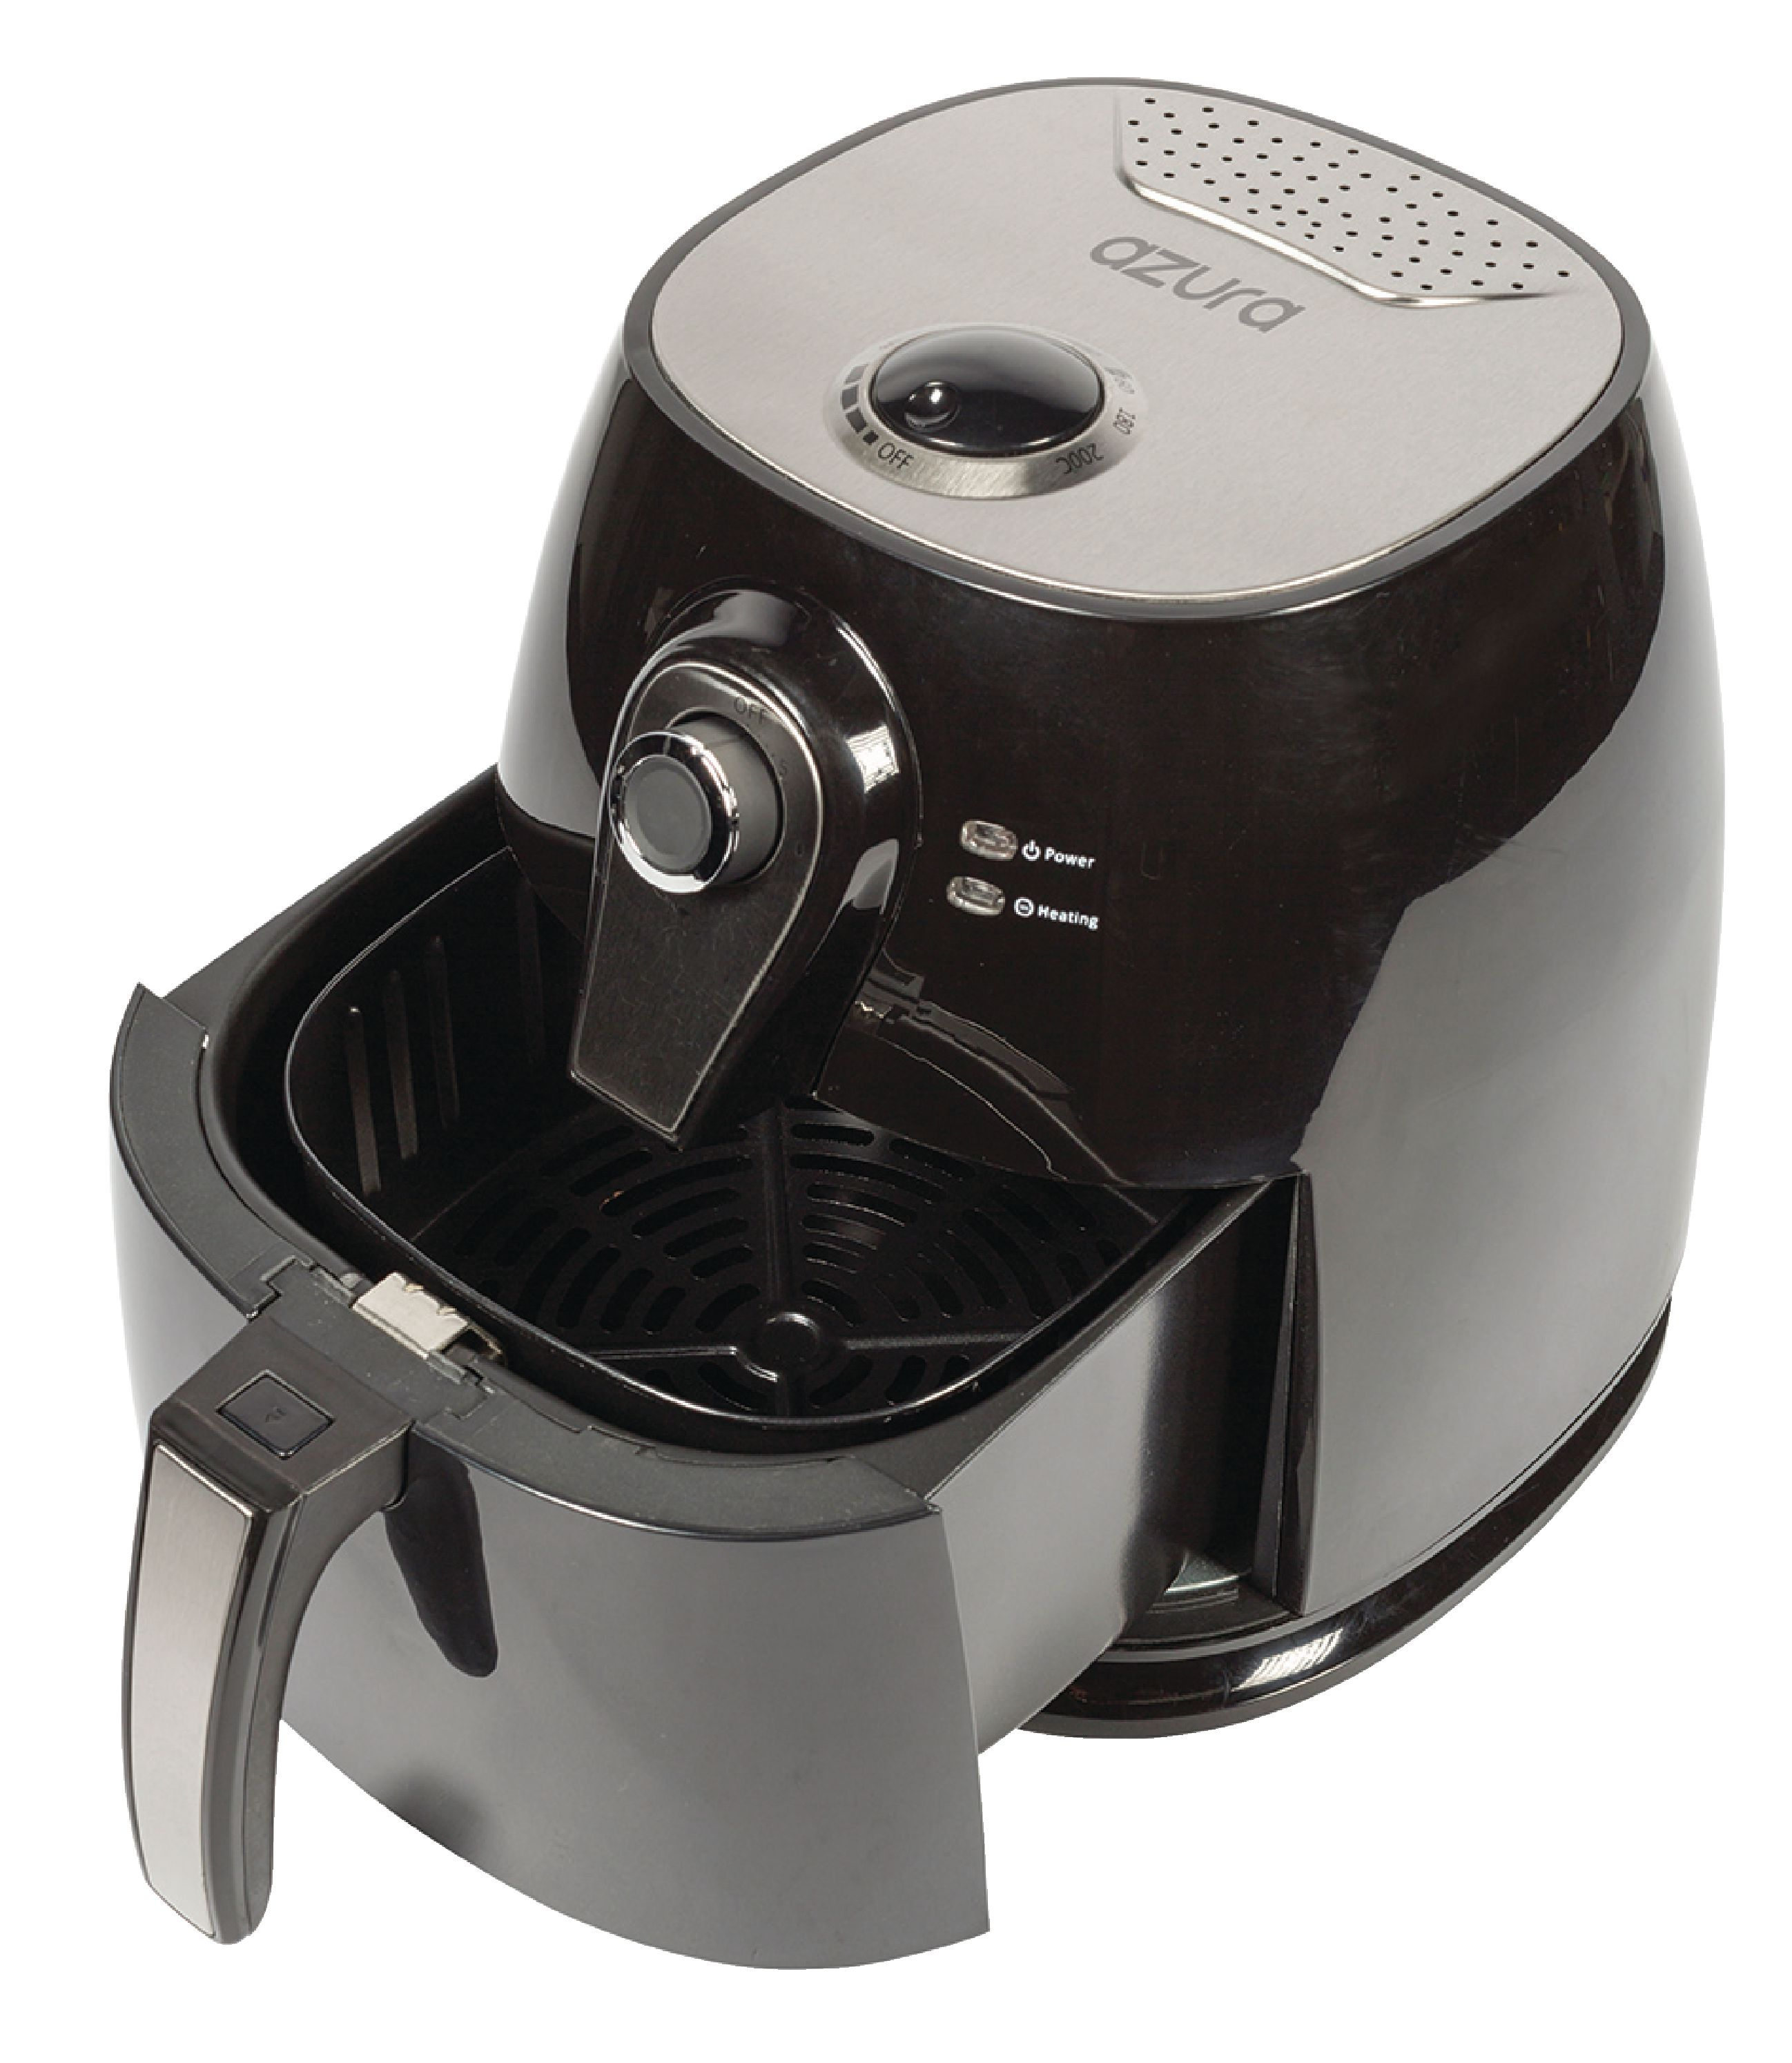 Doebie - Hot Air Fryer 1400W 3L